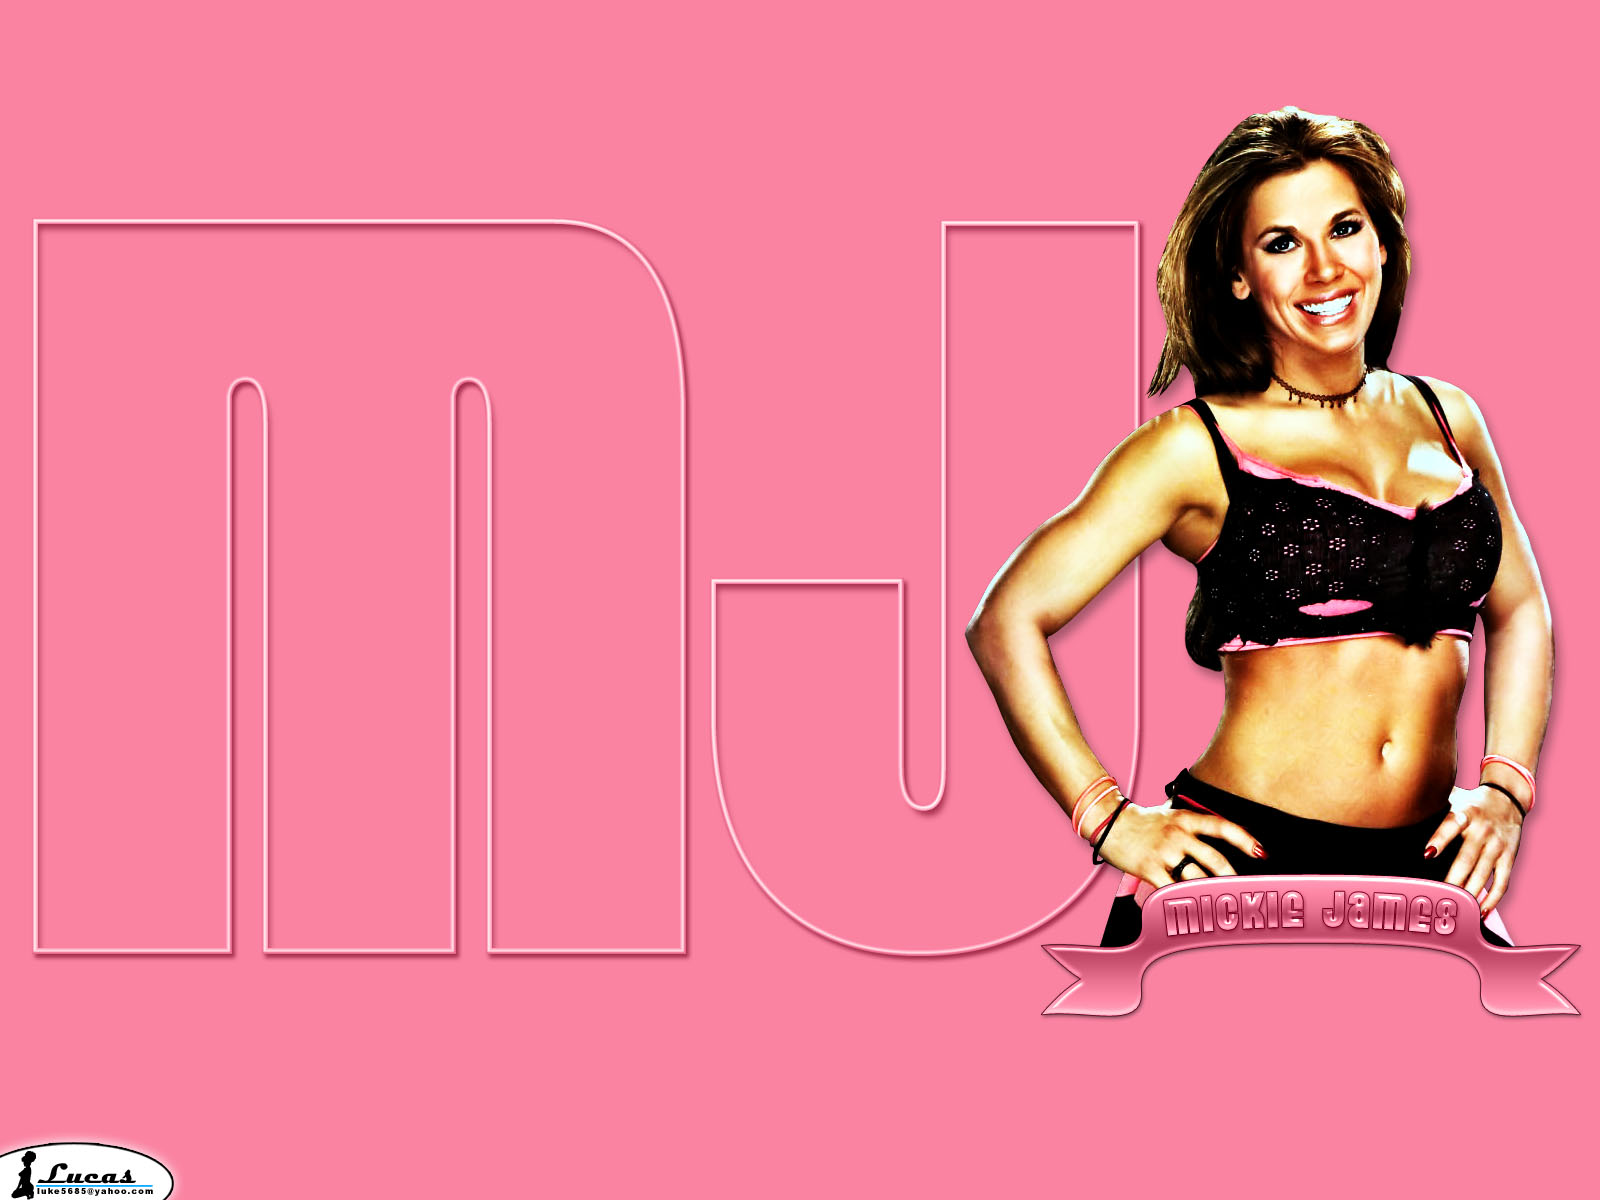 Mickie james Wallpapers Photos images Mickie james pictures 12580 1600x1200